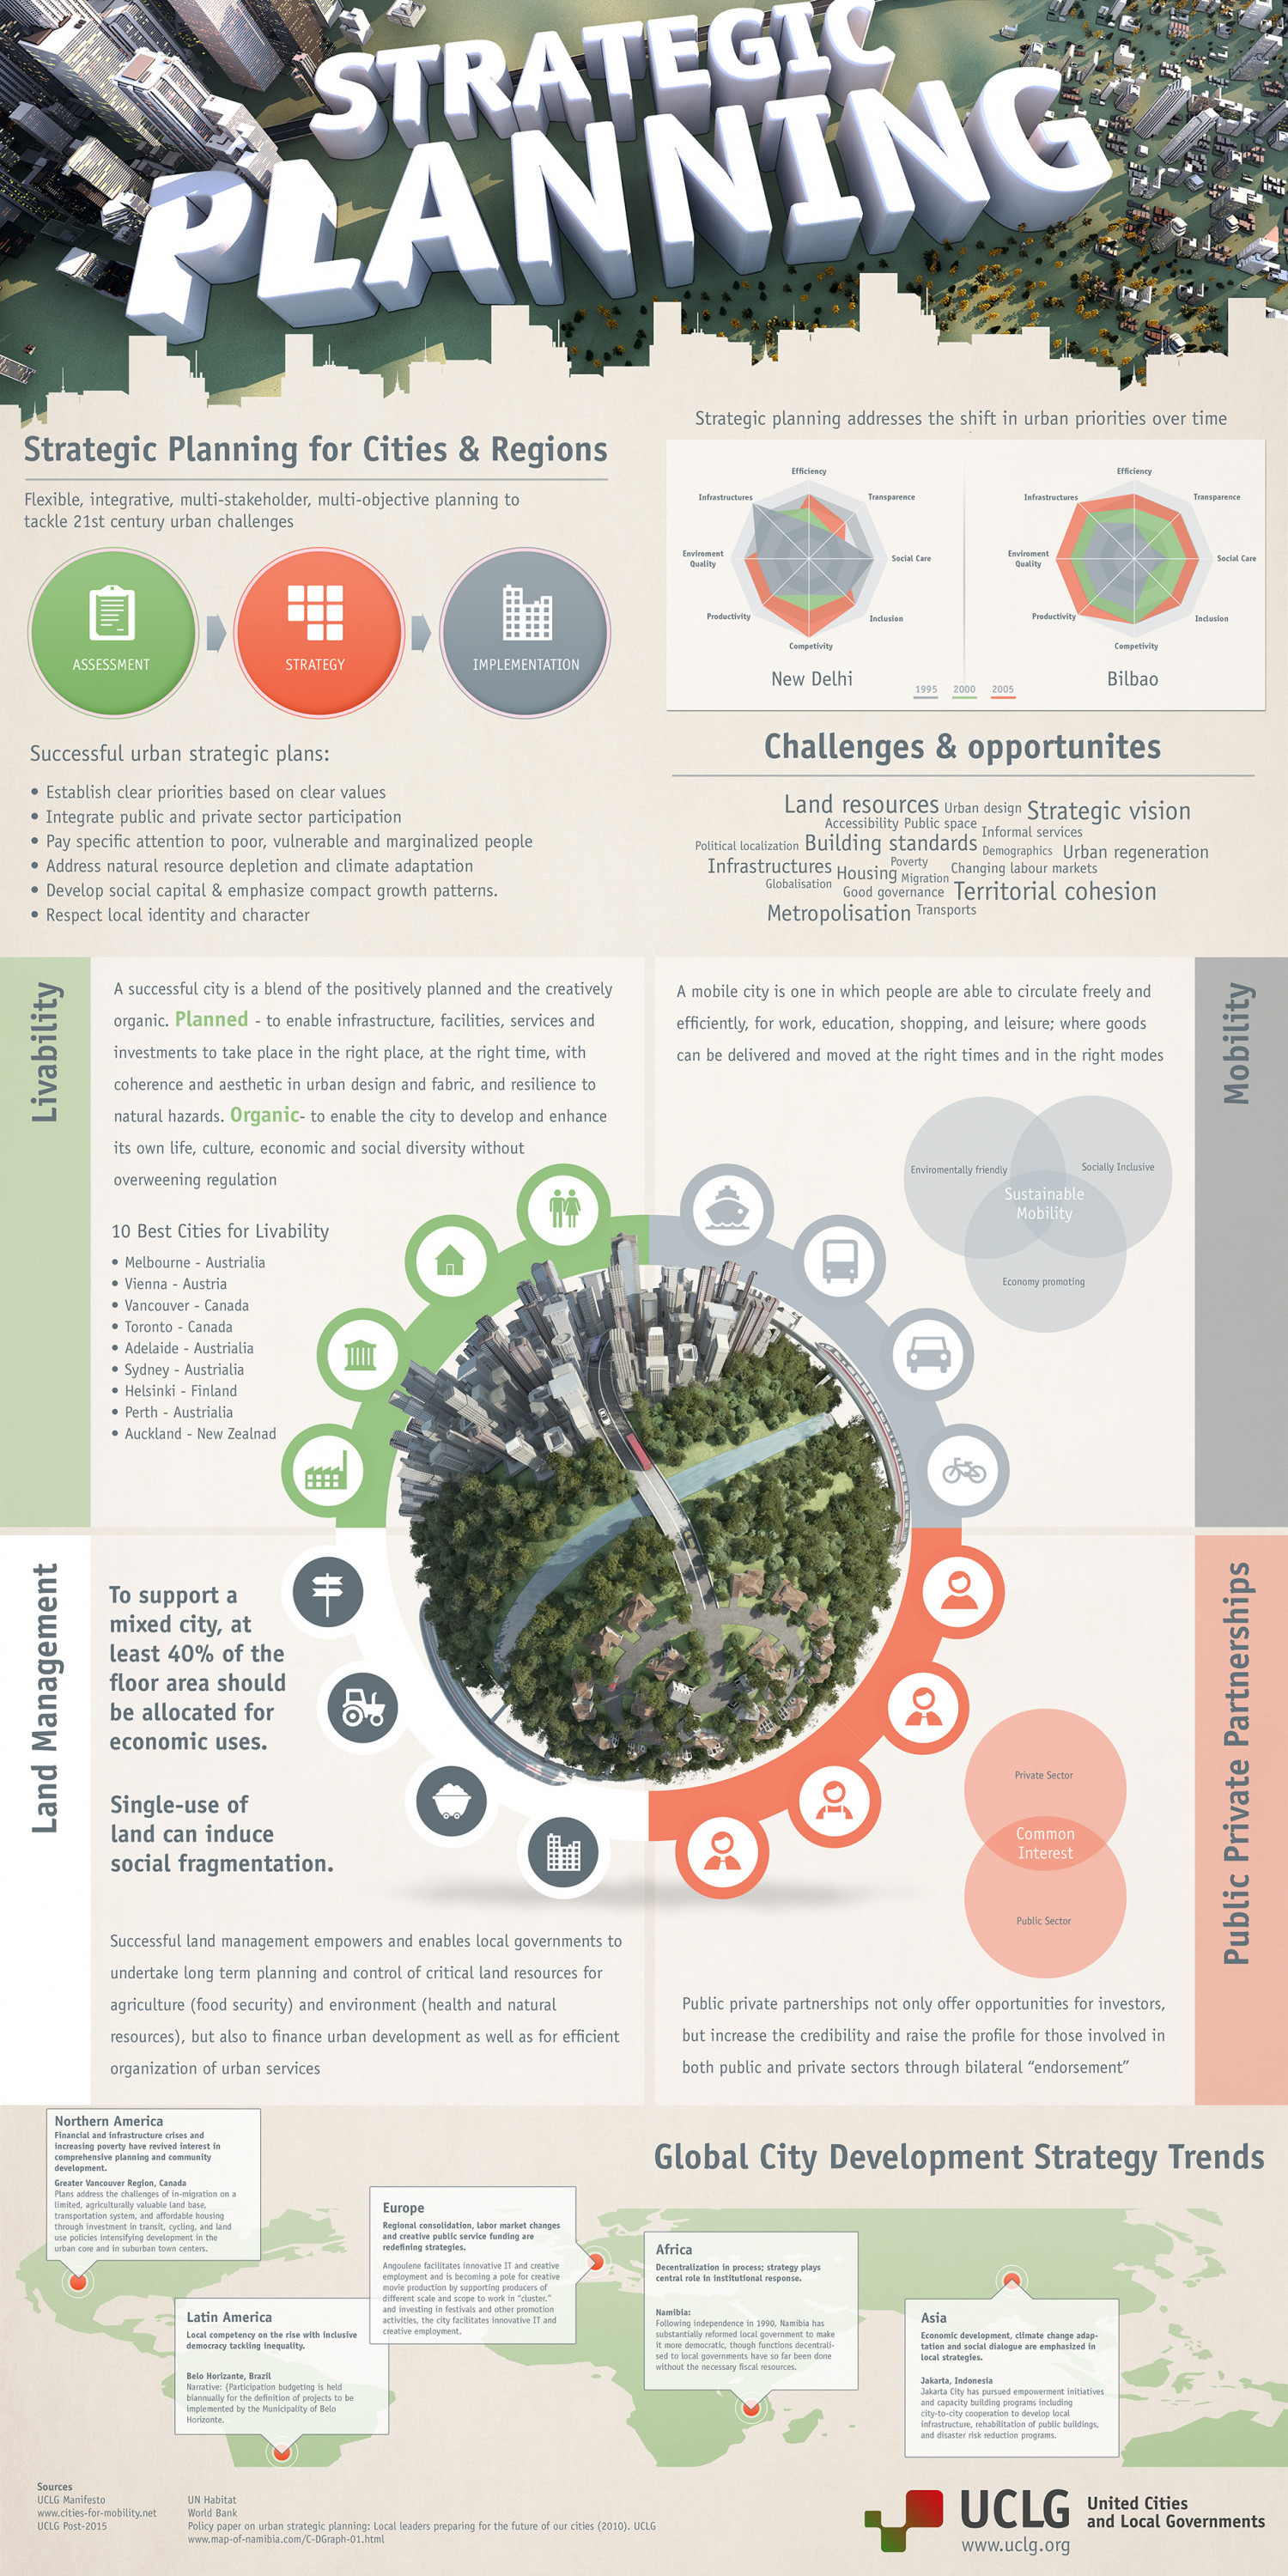 Strategic Planning - The City of 2030 Infographic